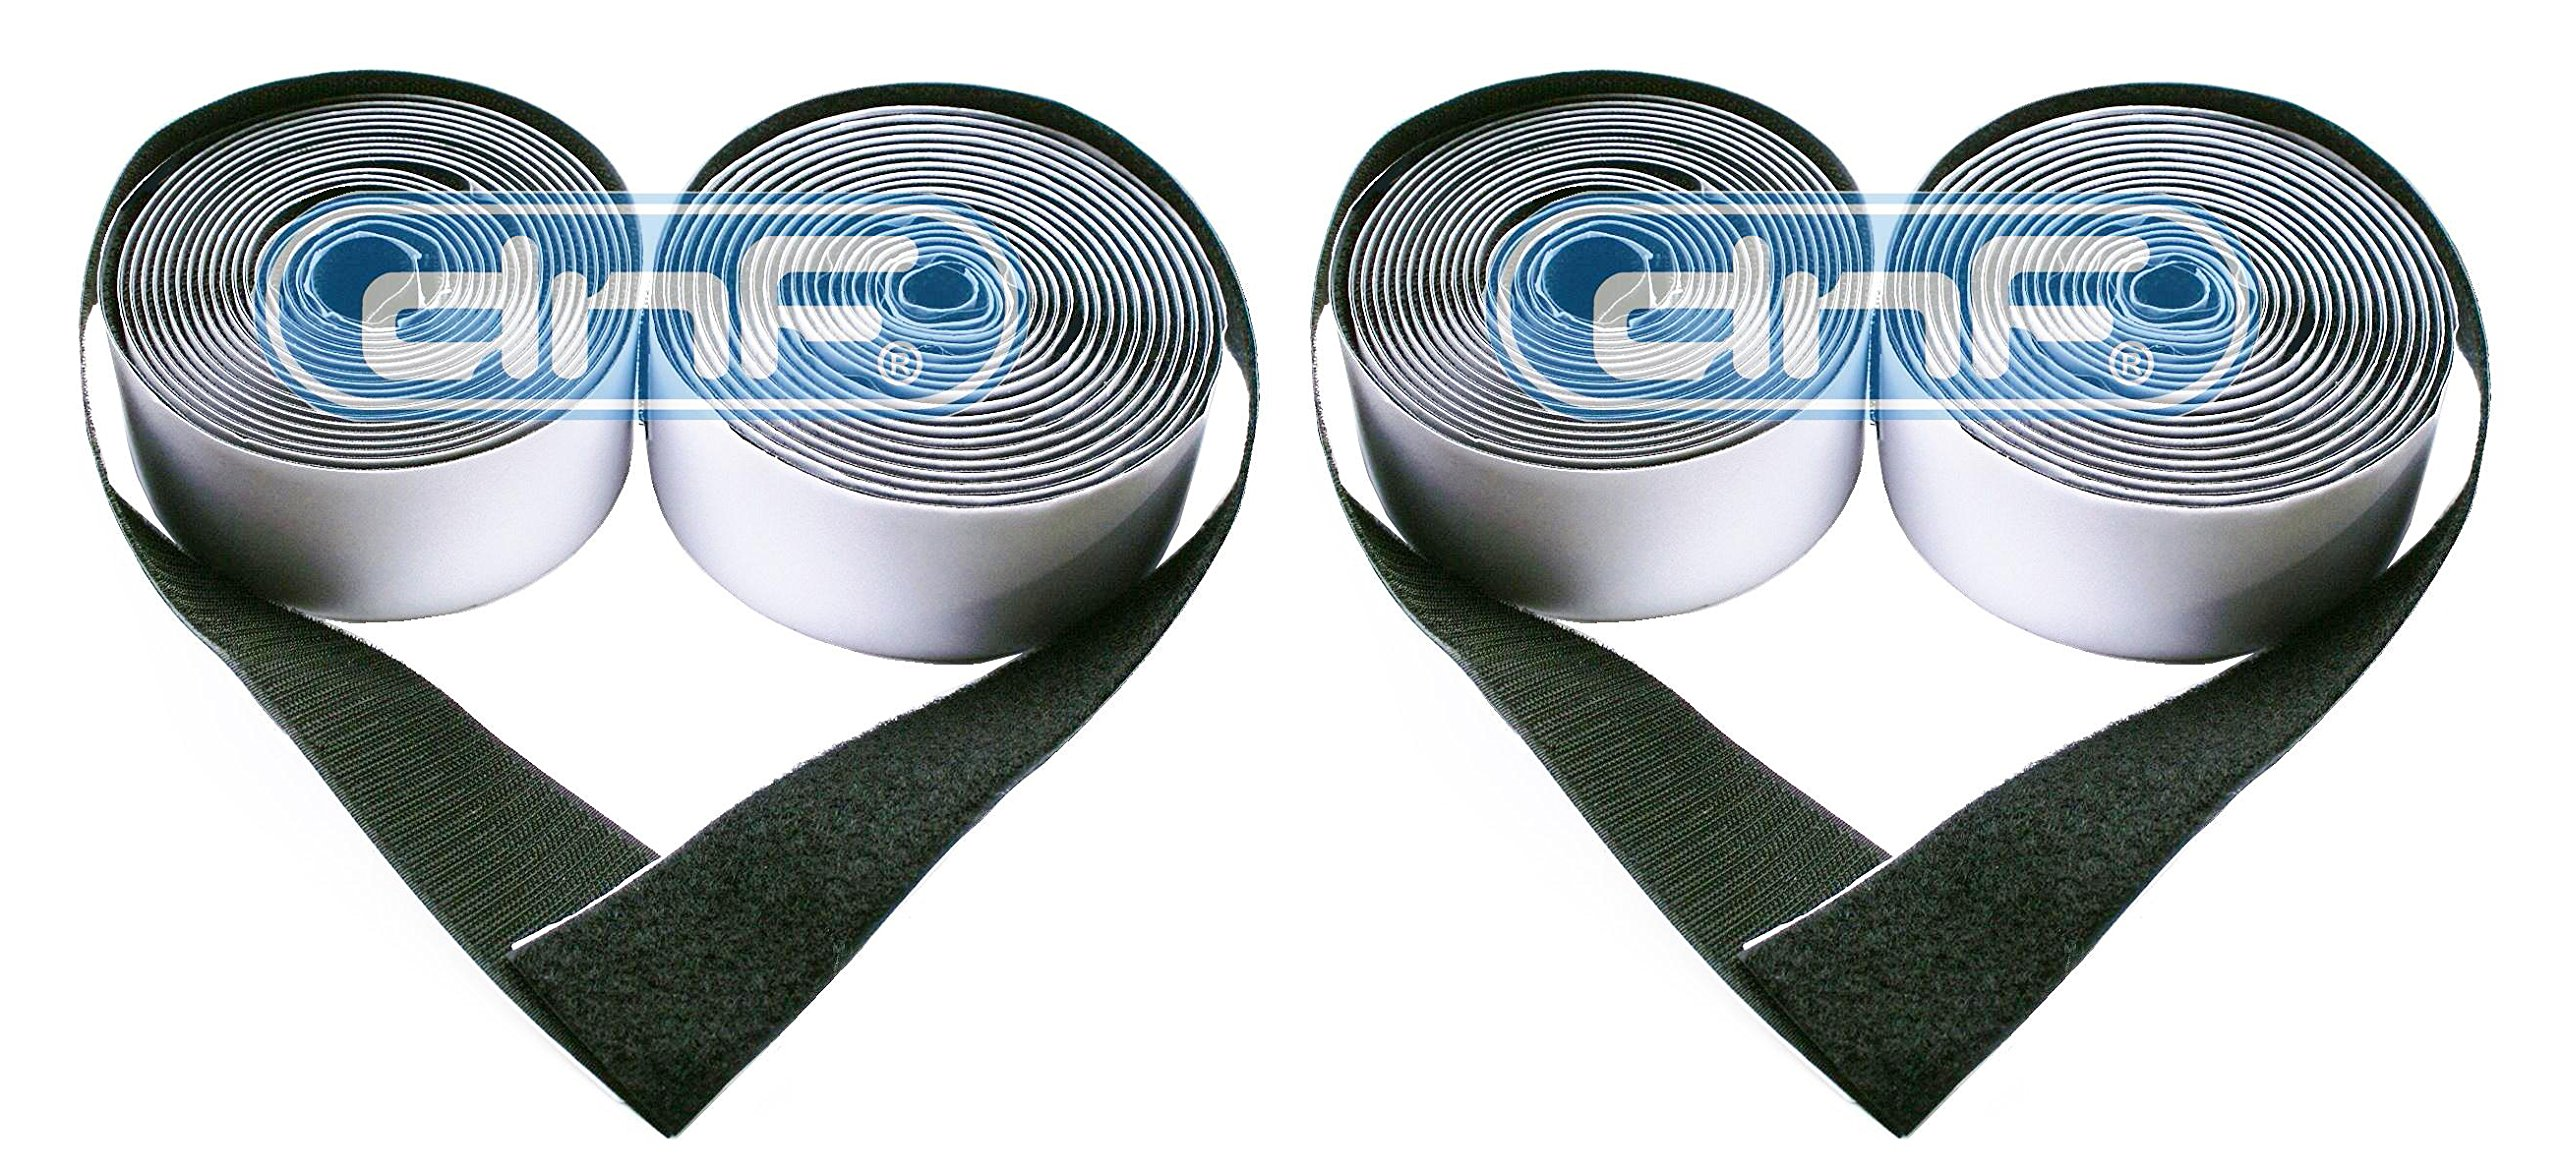 DNF 10 Yards (30 Feet) 2'' Black Self-Adhesive Sticky Hook & Loop Tape Fastener - SAME DAY PRIORITY SHIPPING!